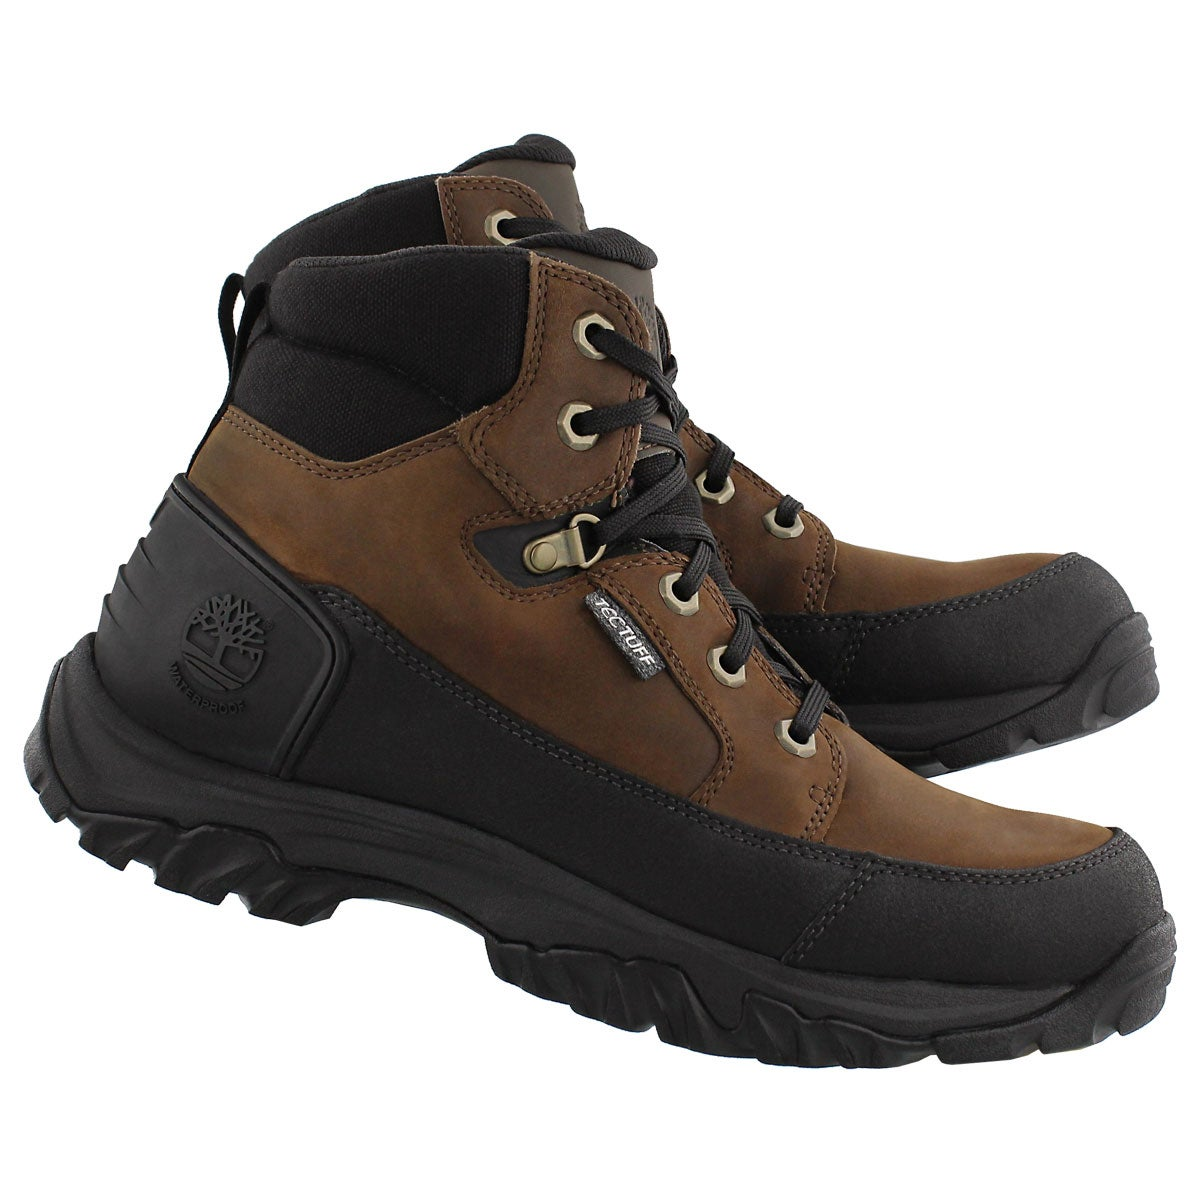 Mns Guy'd dk brown leather hiking boot